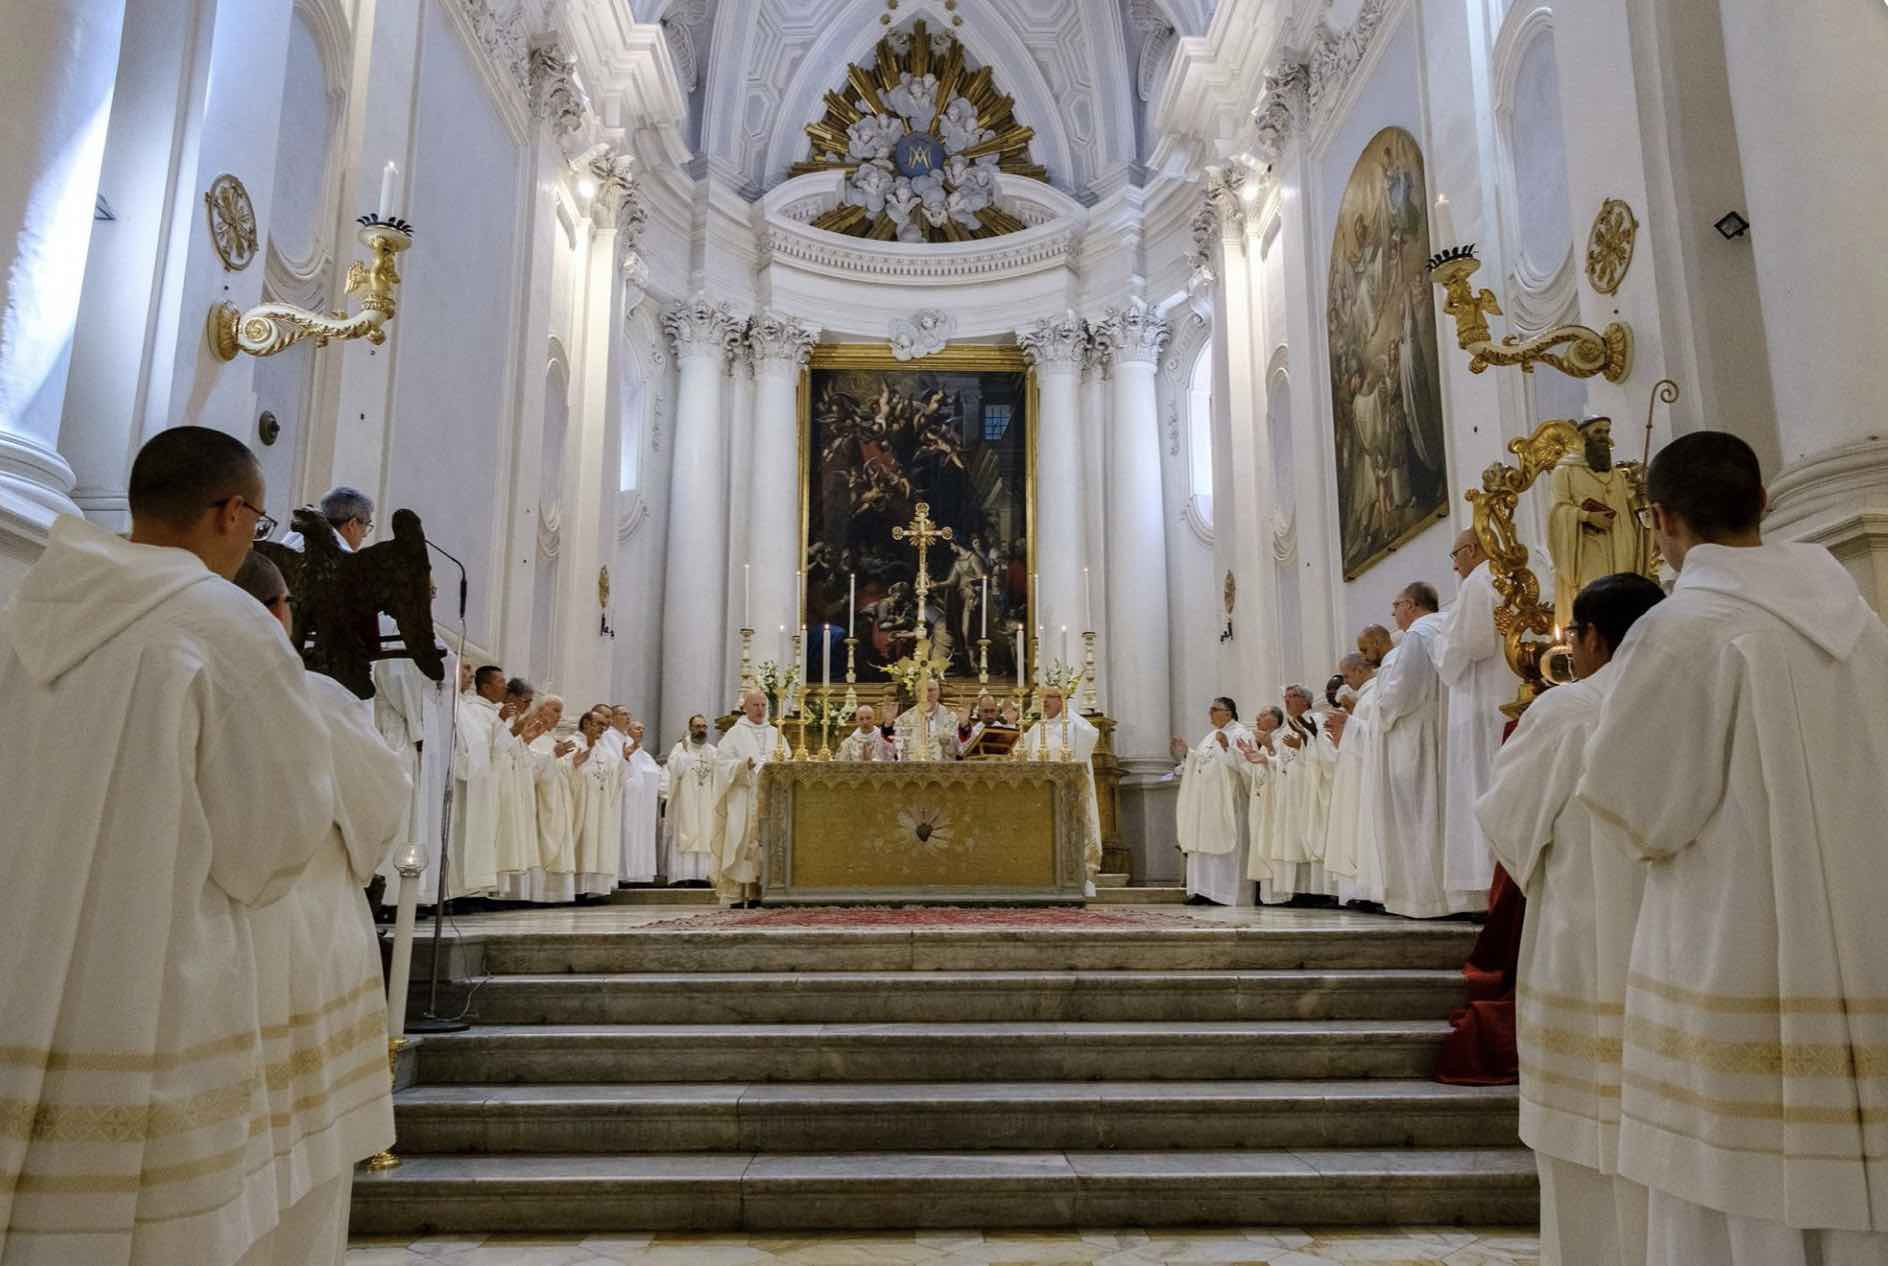 Visiting the Monte Oliveto Maggiore abbey during a service or choir rehearsal